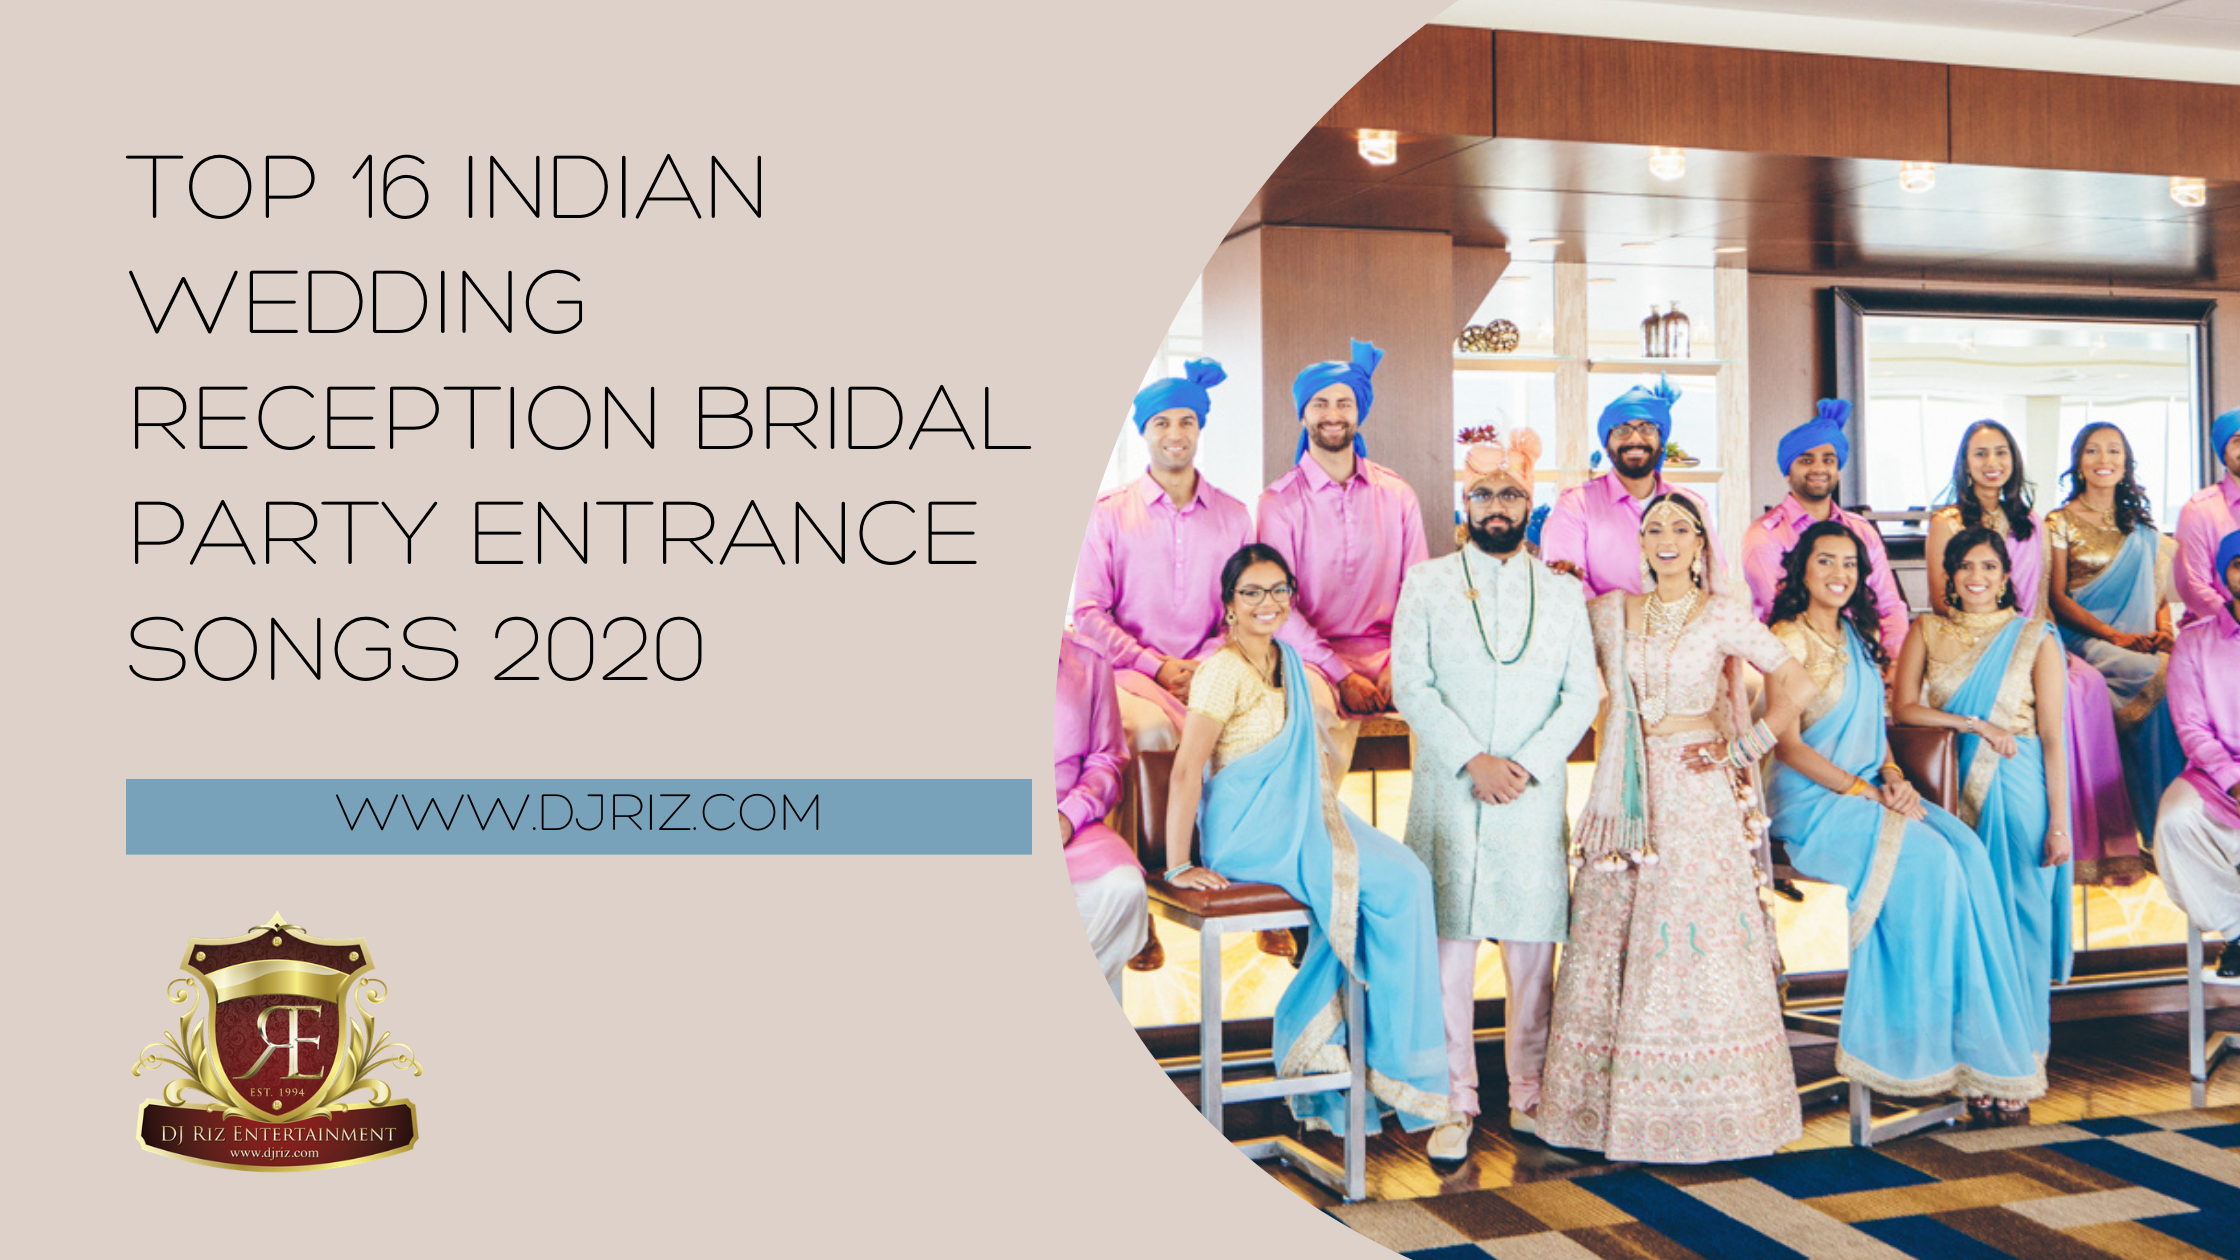 Top 16 Indian Wedding Reception Bridal Party Entrance Songs 2020